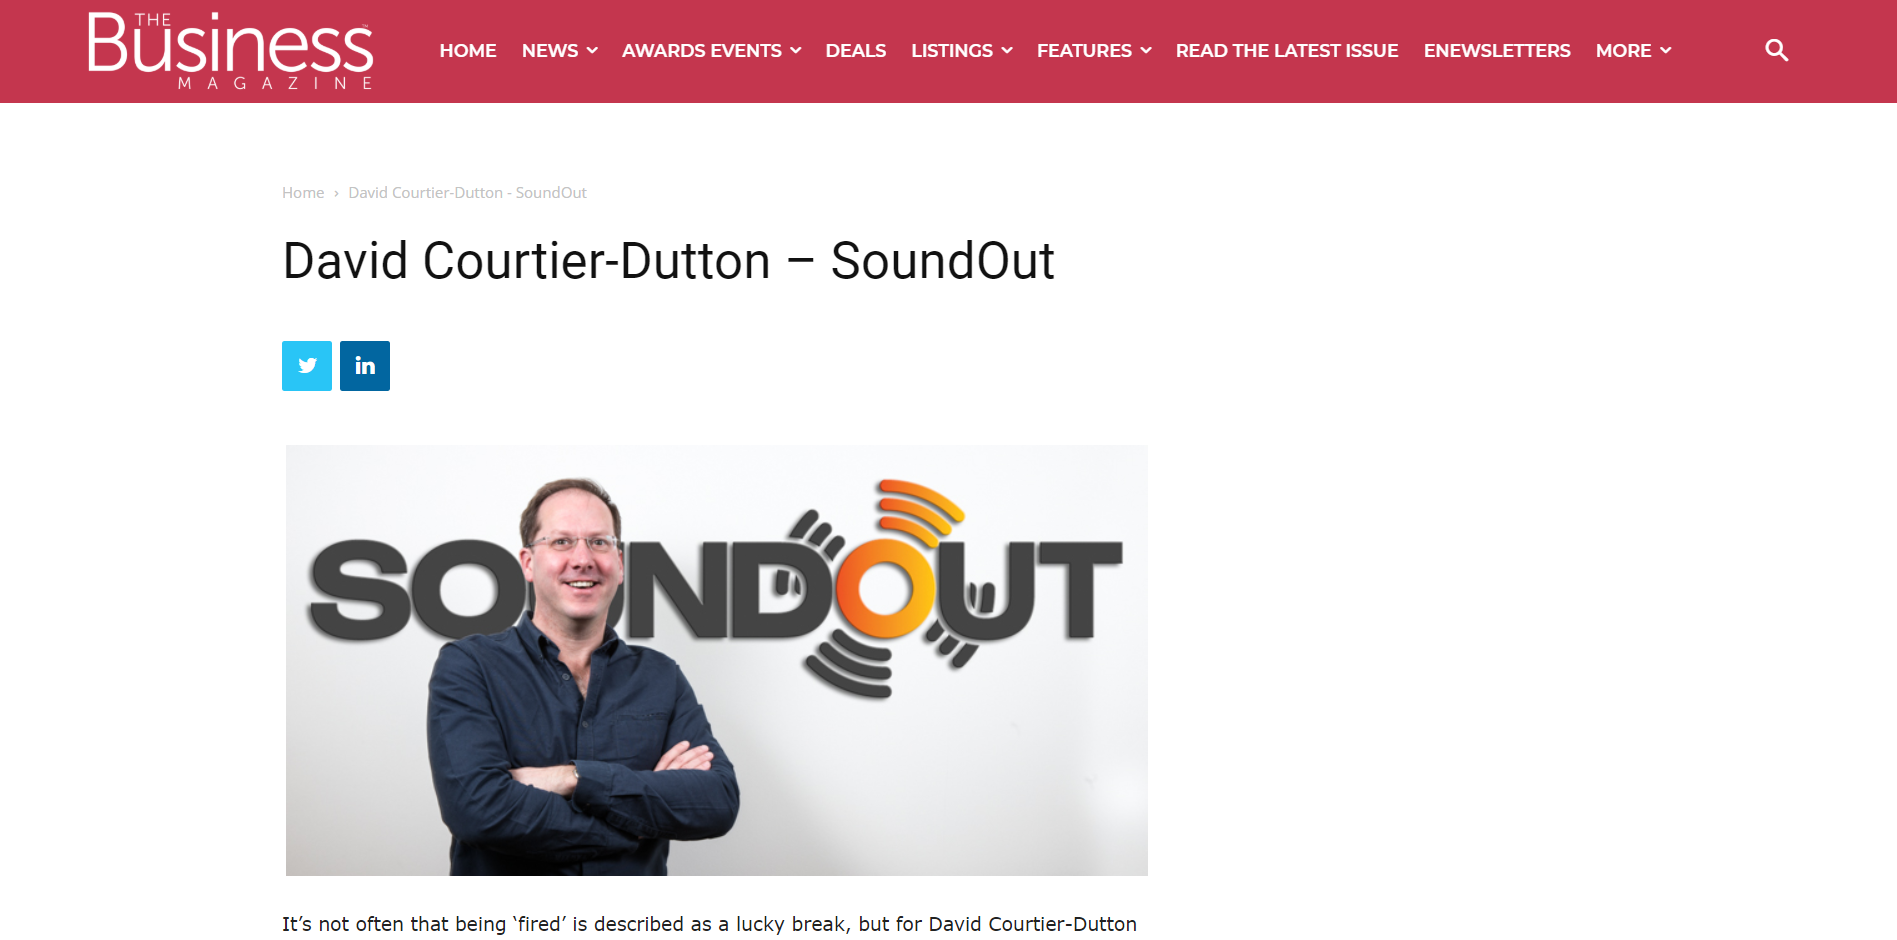 David Coutier-Dutton in the Business magazine